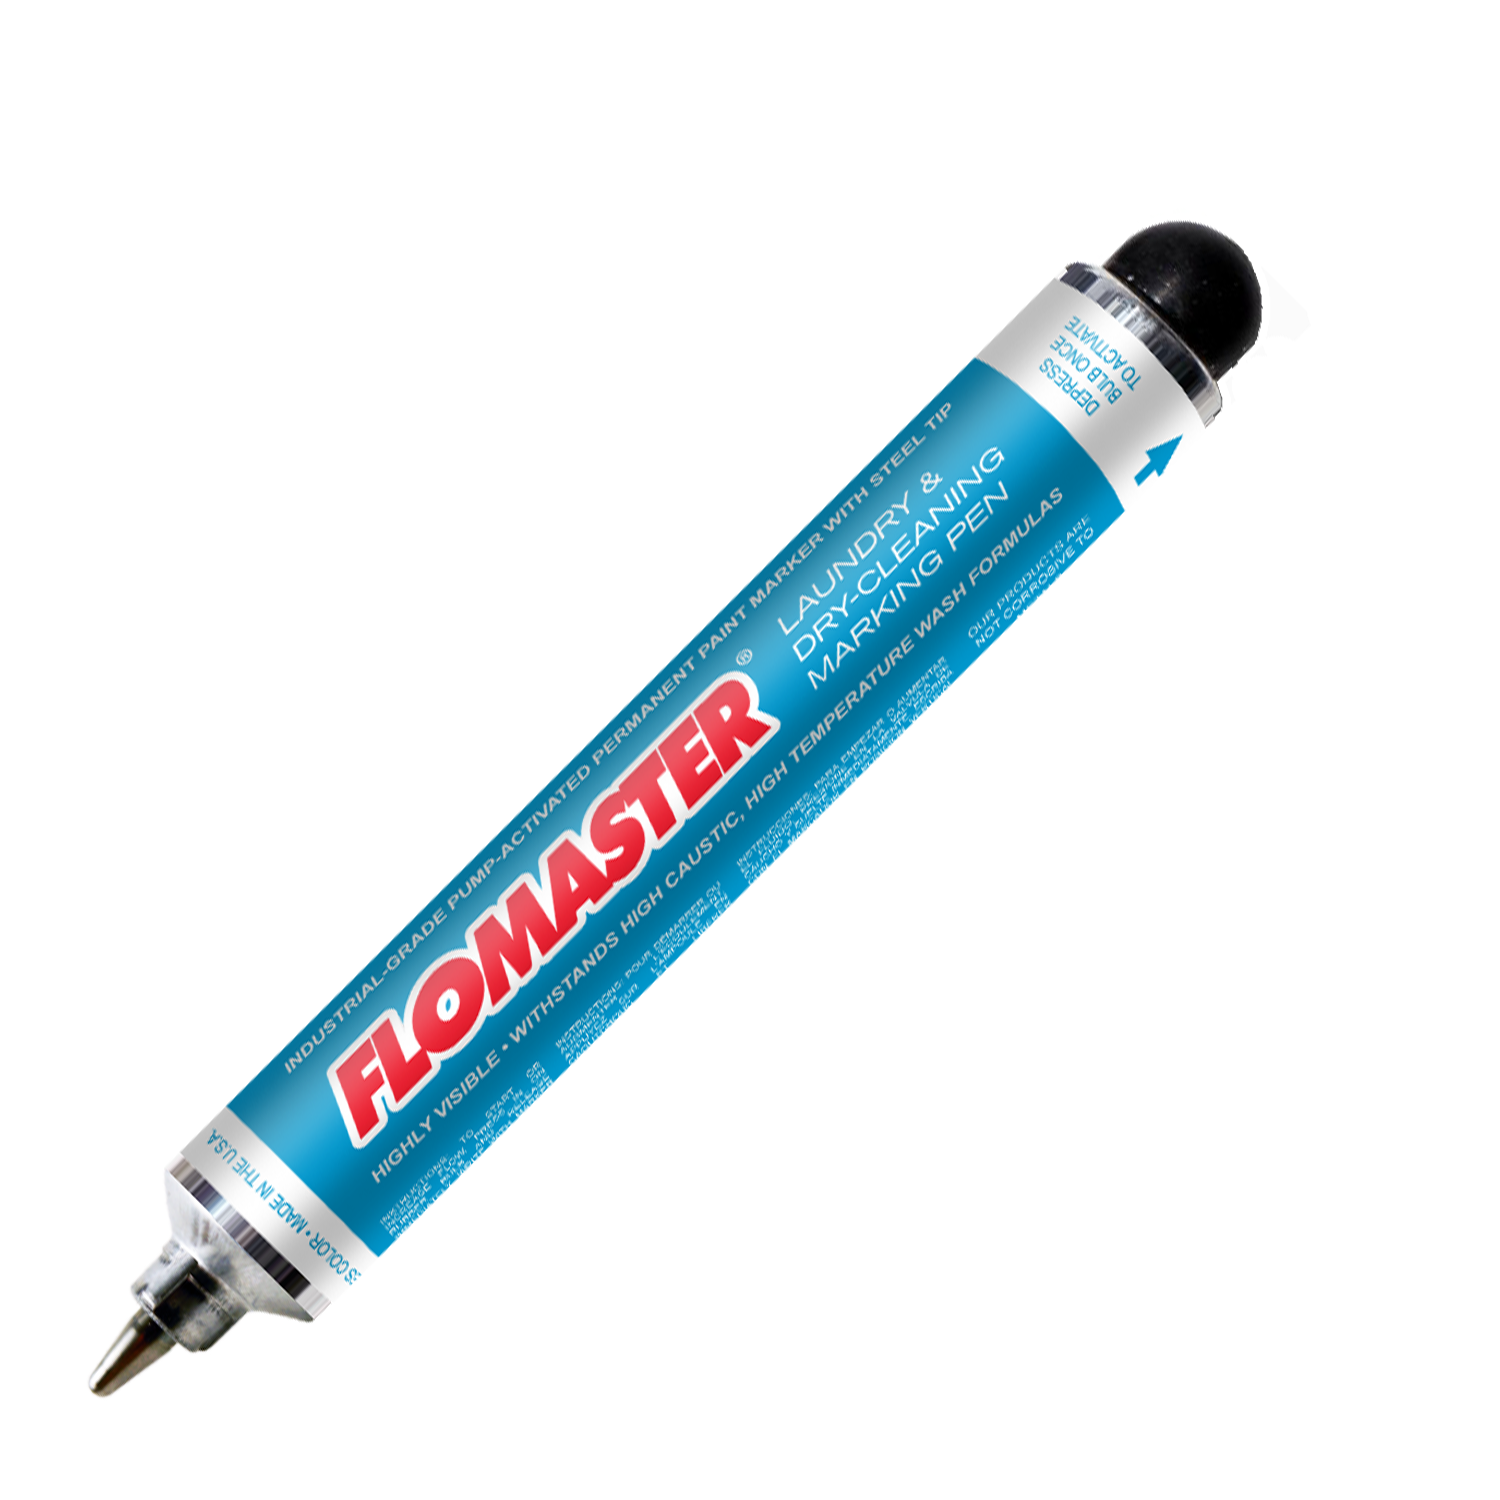 Flomaster Laundry and Dry Cleaning Pen fm048